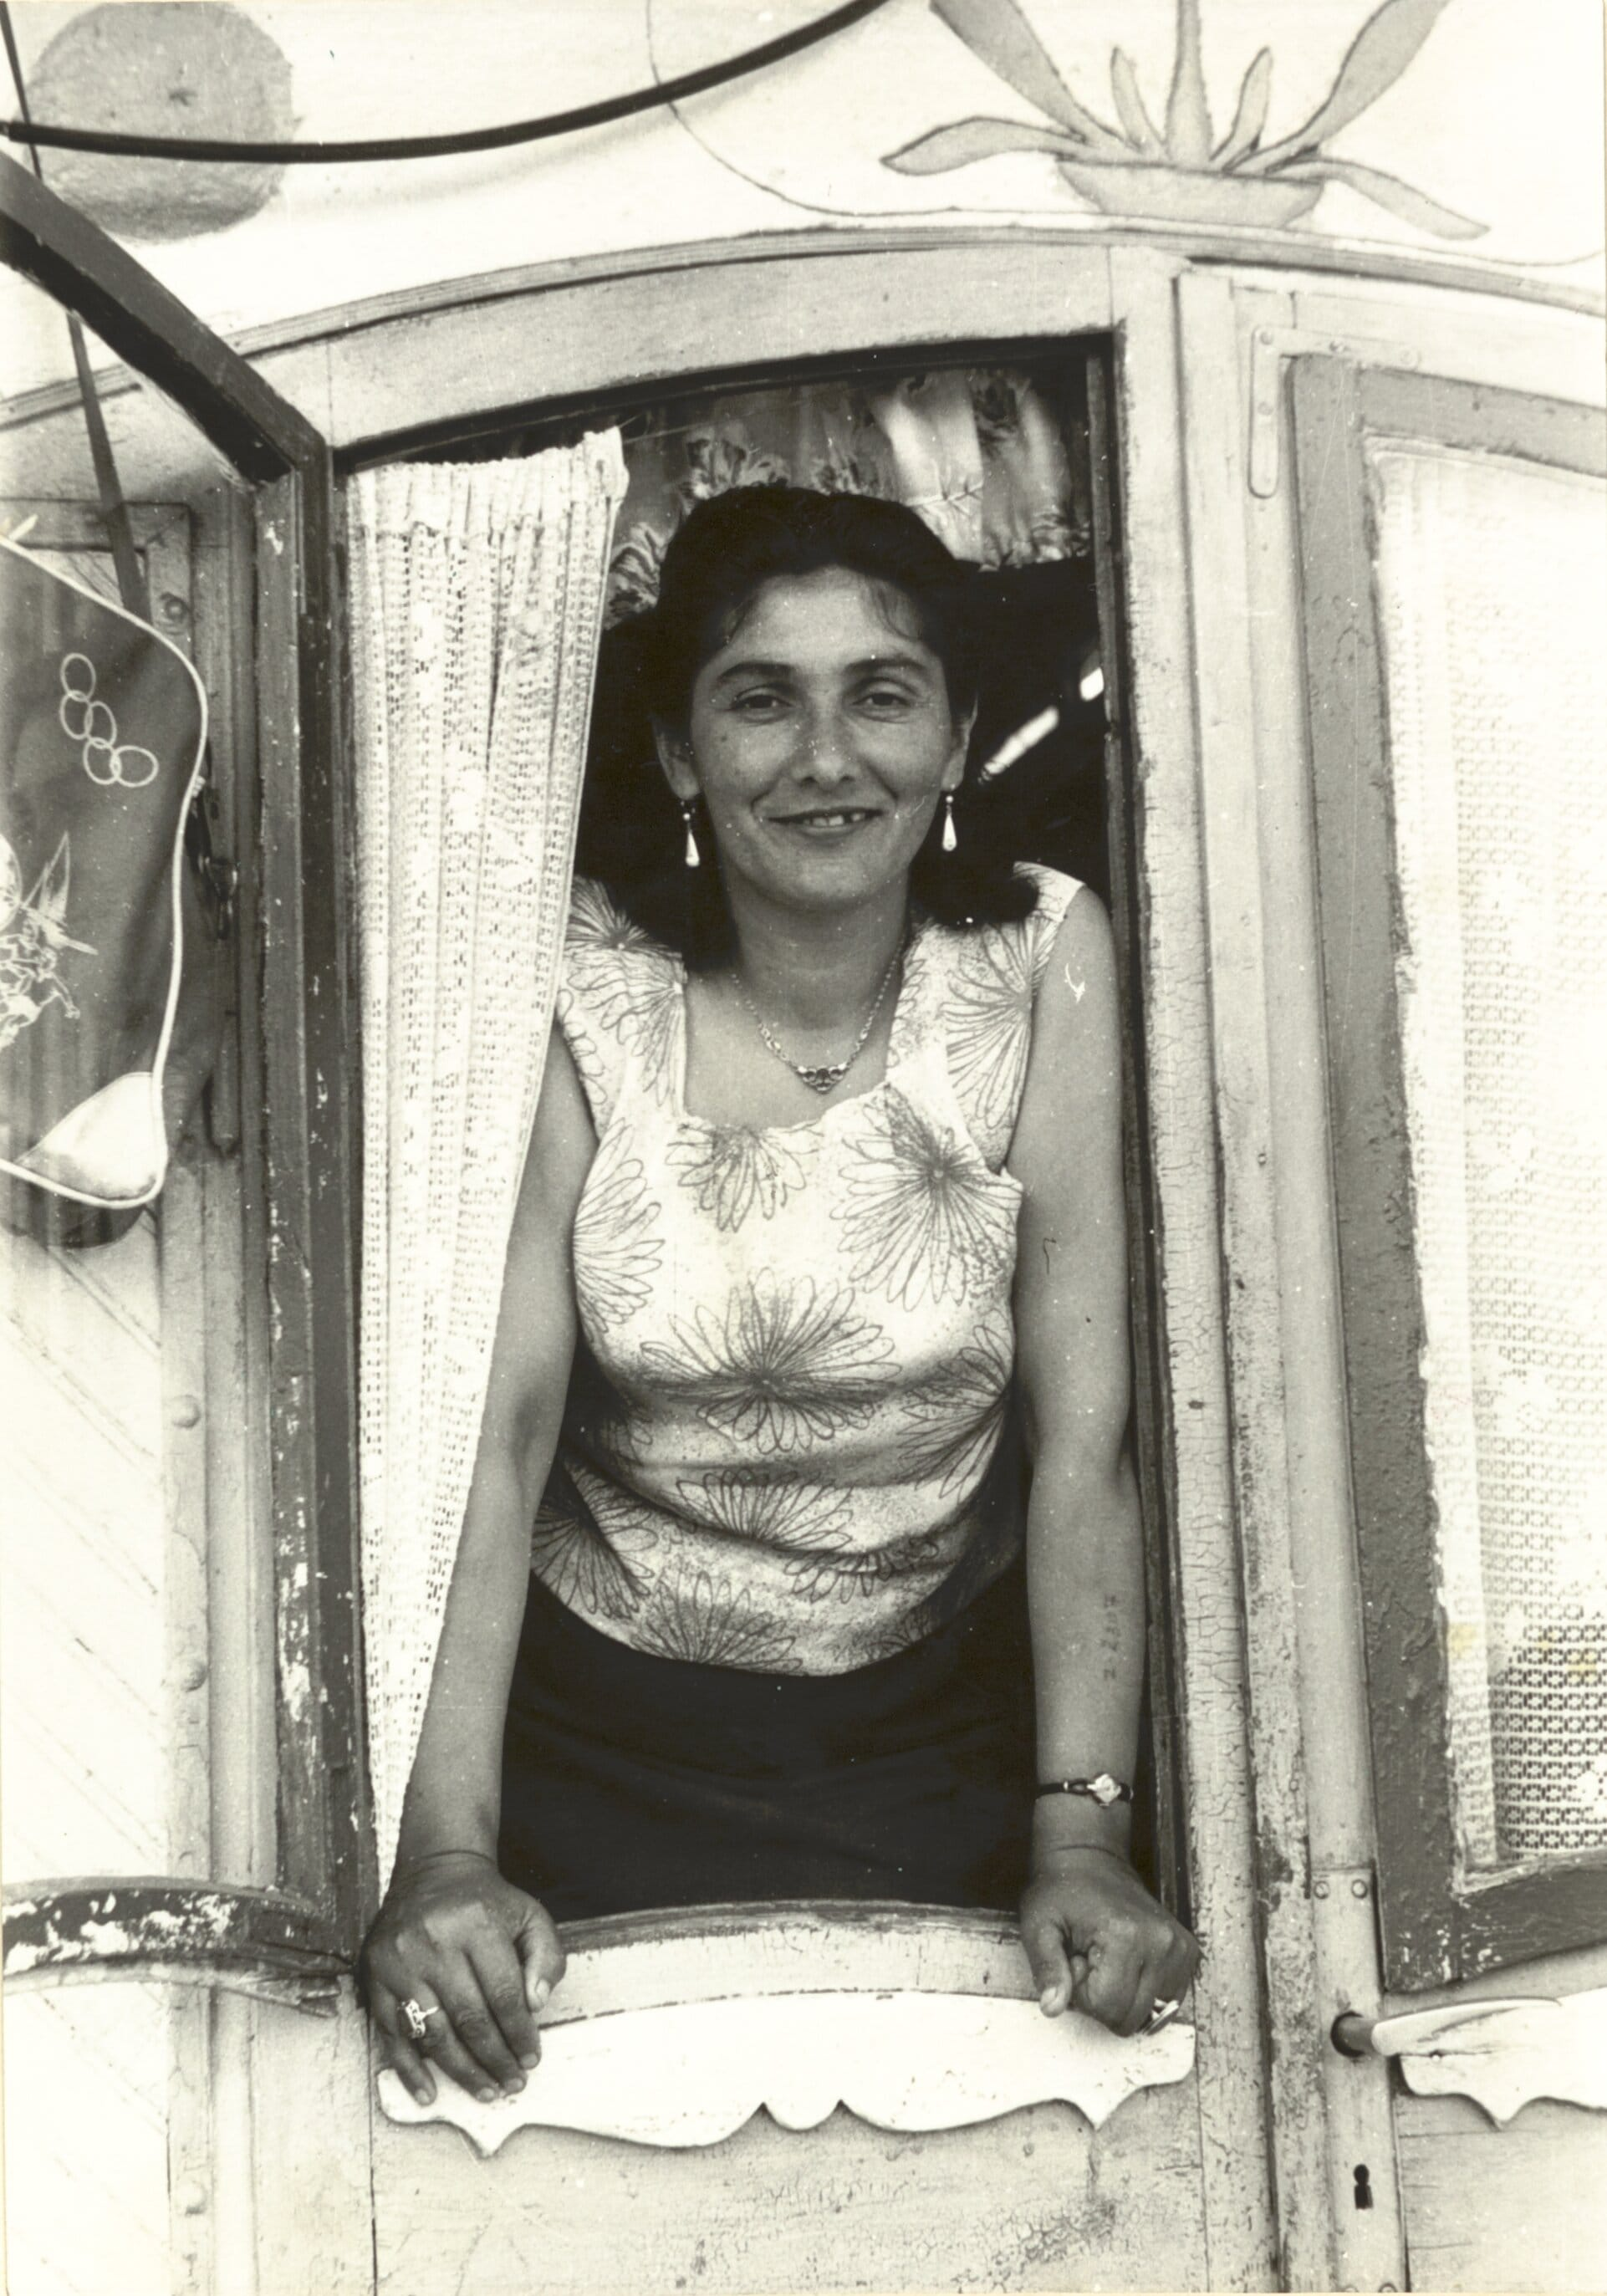 Margarete Kraus, a Czech Roma, photographed after the Second World War. Her Auschwitz tattoo is visible on her left arm.